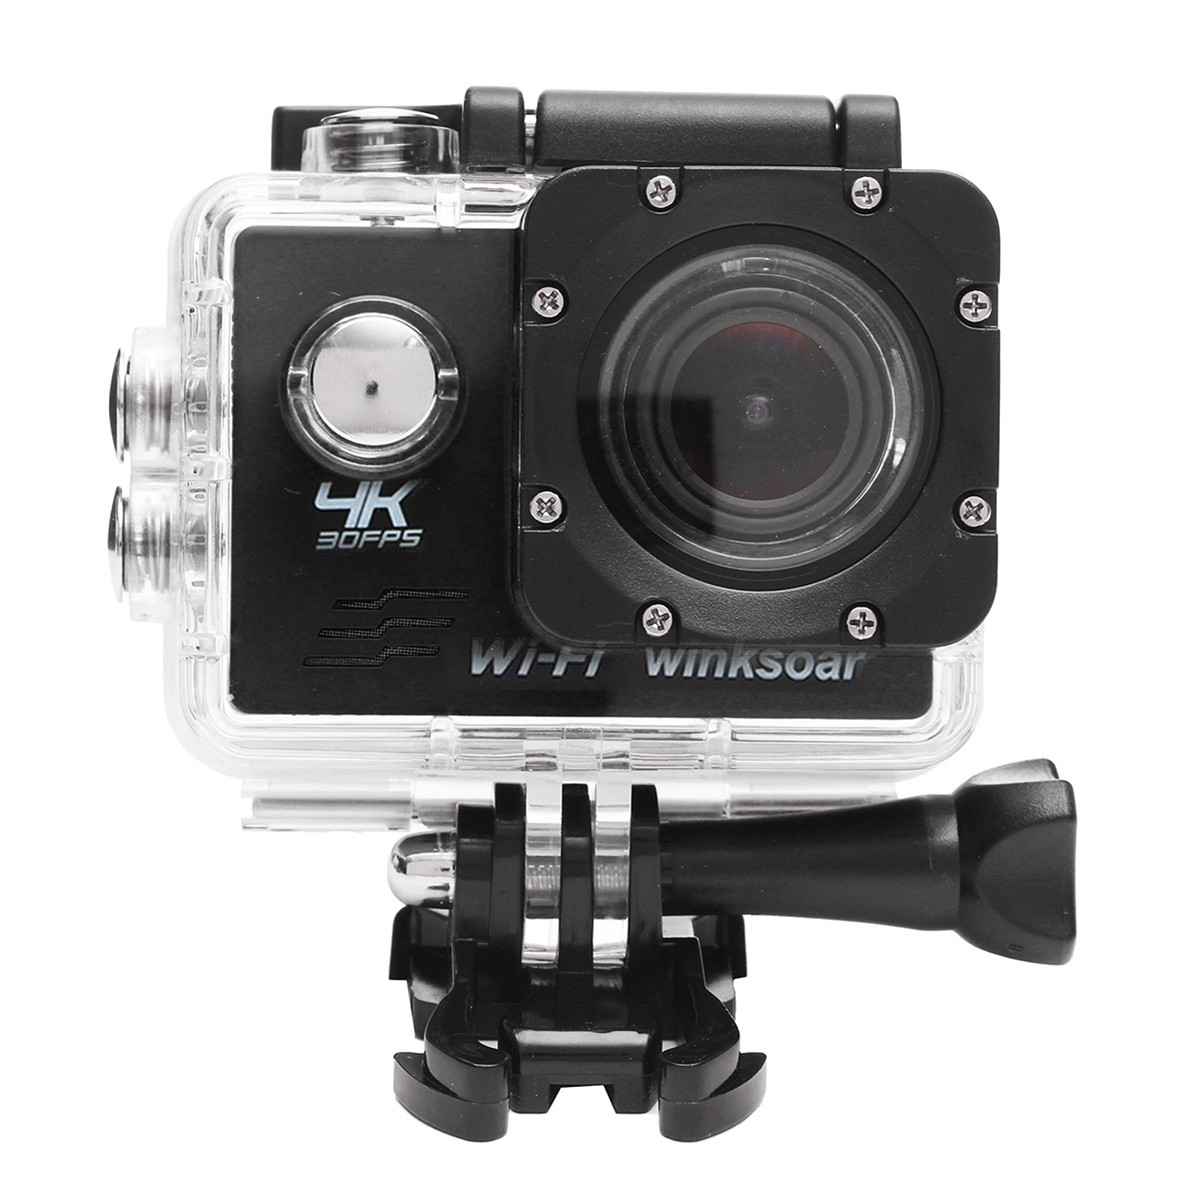 Winksoar SJ9000 Sports Action Camera WiFi HD 4K 1080P 16MP 120° Angle 2-inch Screen Mini DV Recorder Waterproof DV Camcorder Birthday New Year Christmas Gifts